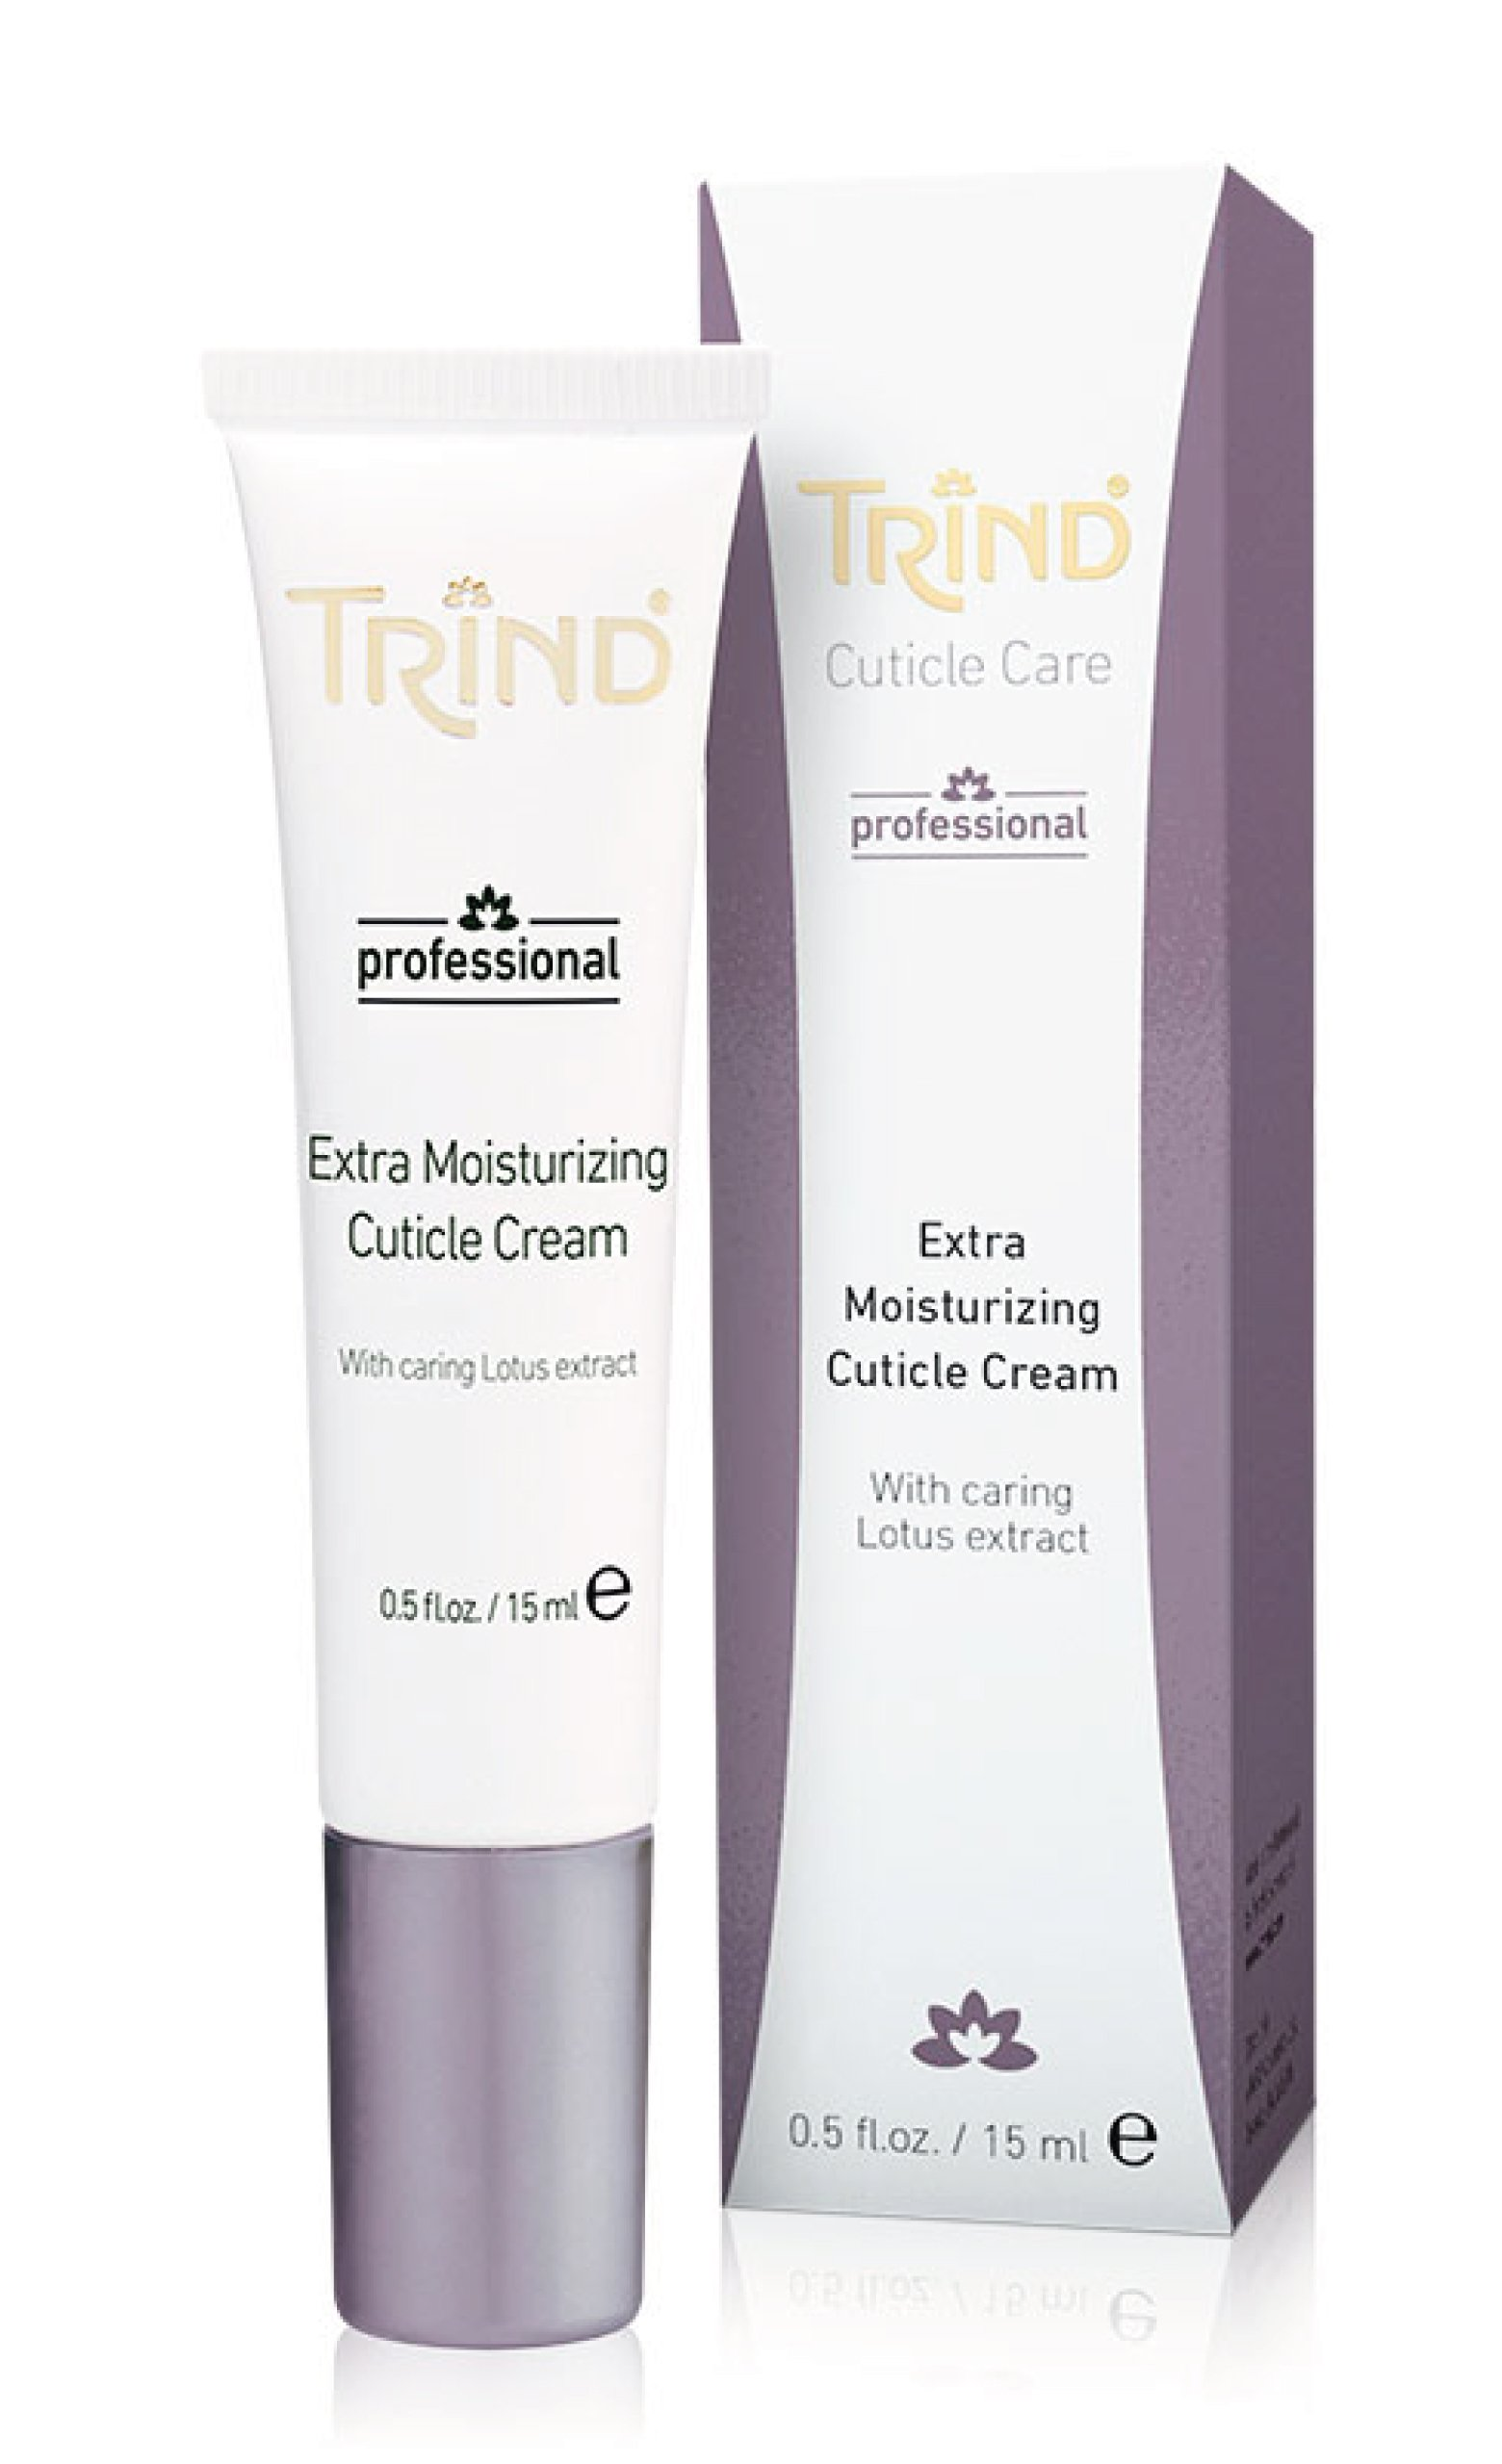 Extra Moisturizing Cuticle Cream by Trind